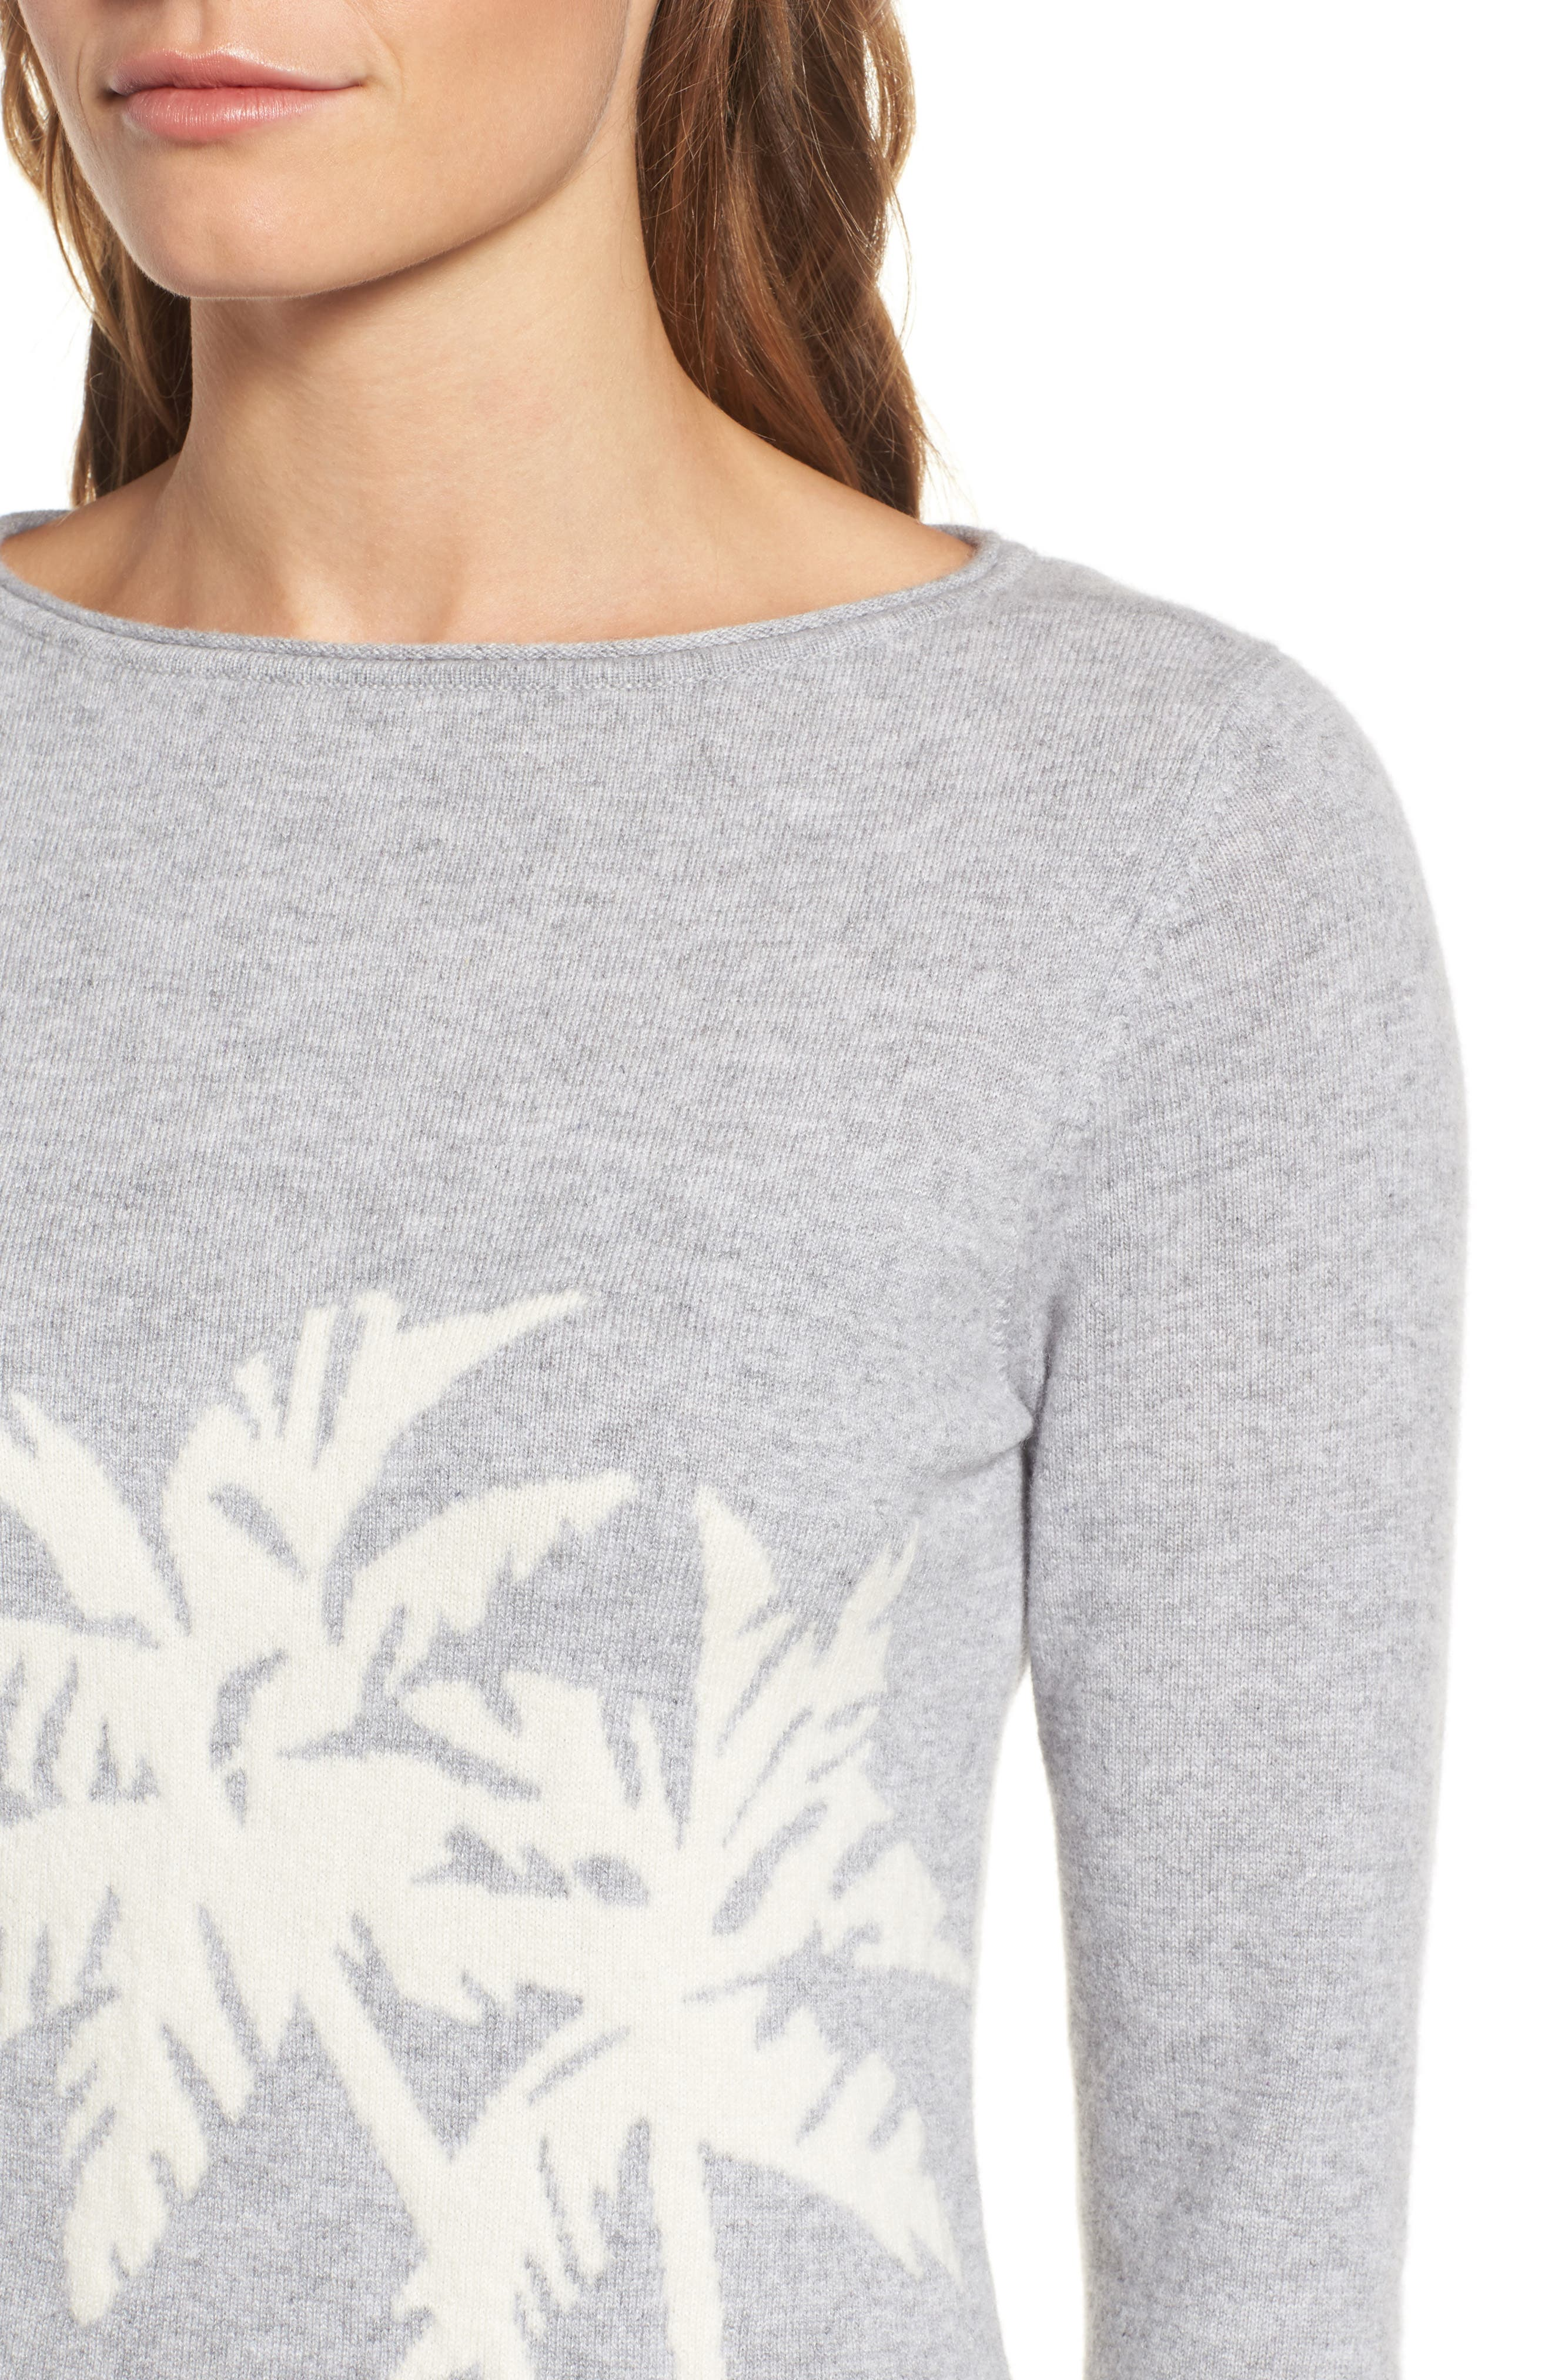 Island Palm Intarsia Cashmere Pullover,                             Alternate thumbnail 4, color,                             Light Grey Heather